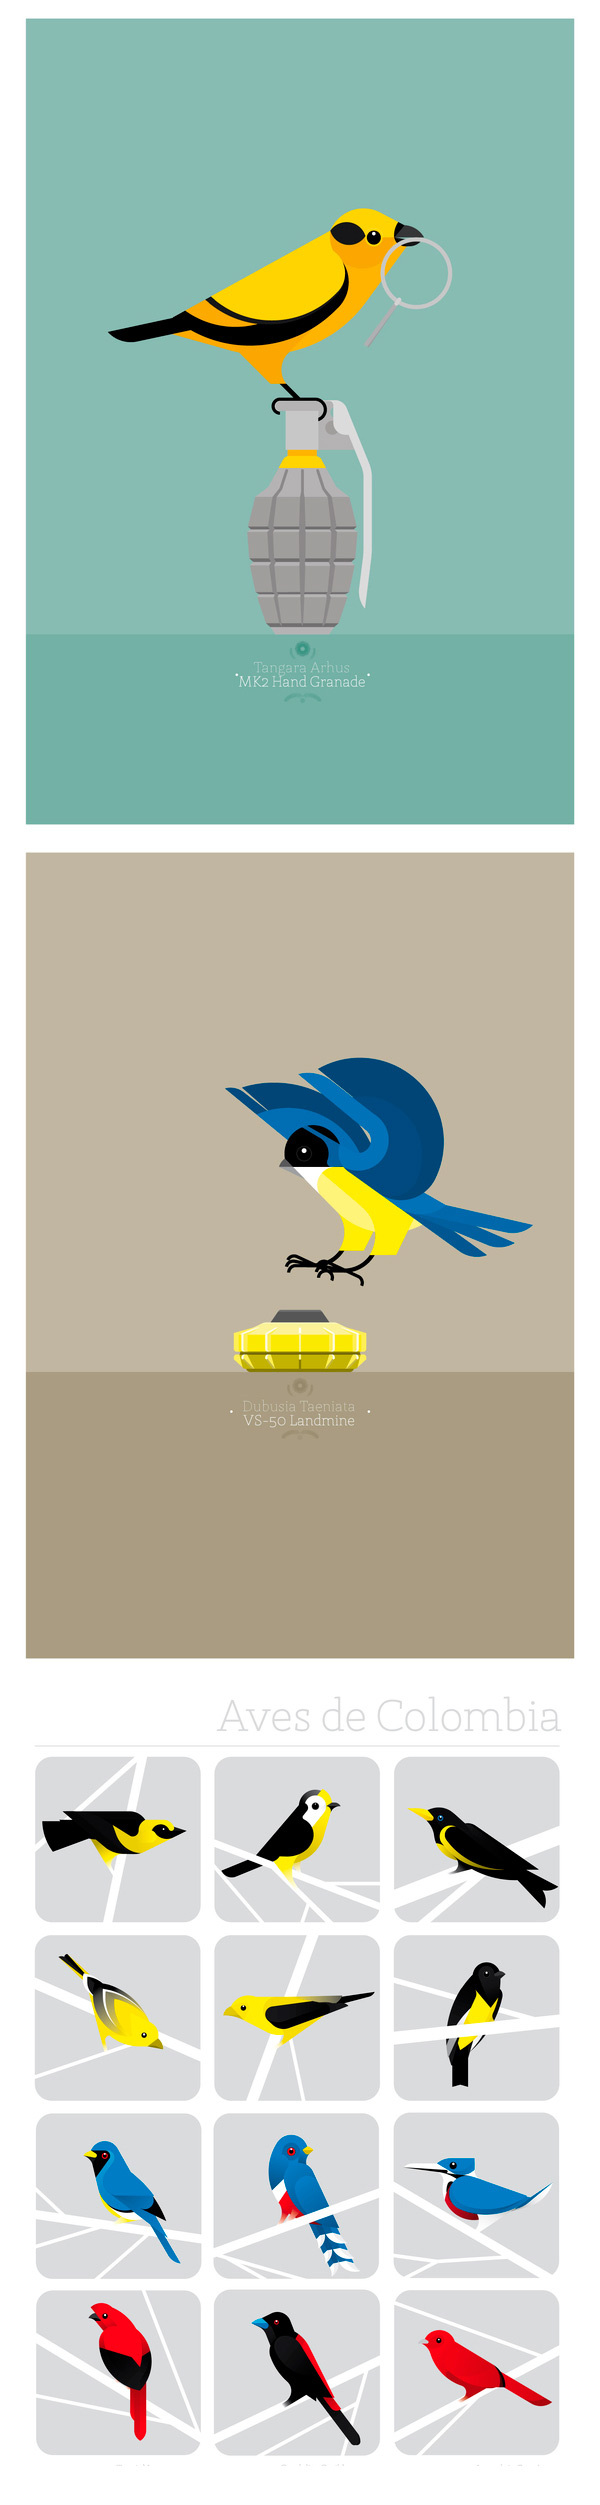 Camilo Carmona illustrations minimaliste birds